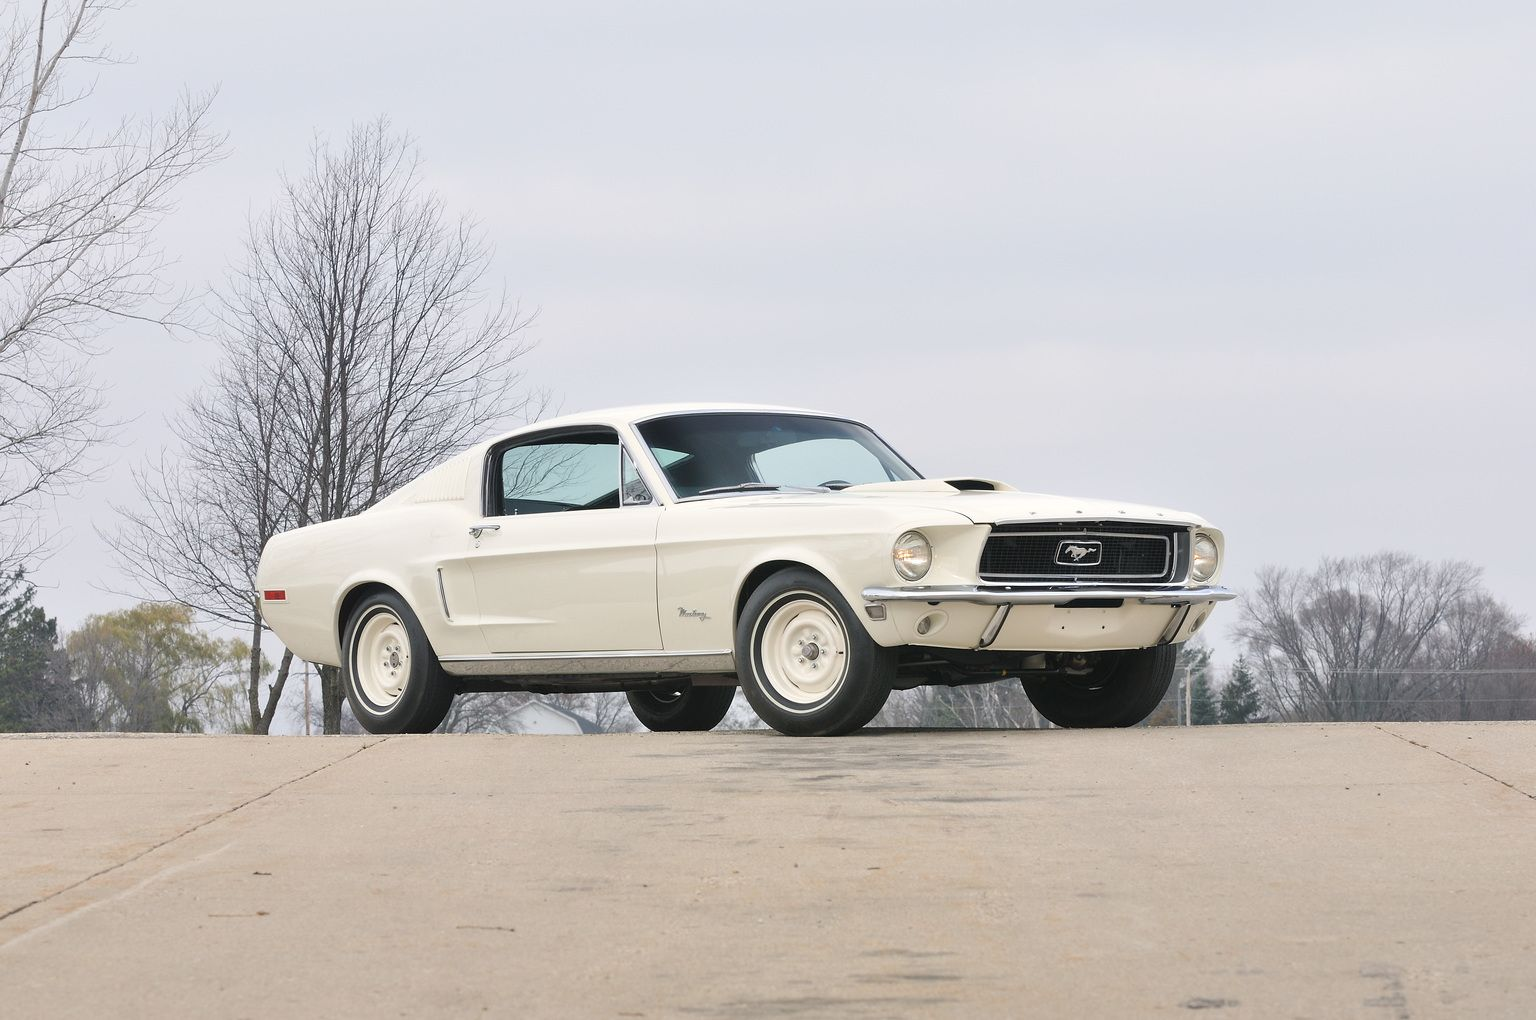 1968 Tasca Mustang Fastback Lightweight | muscle cars | Pinterest ...